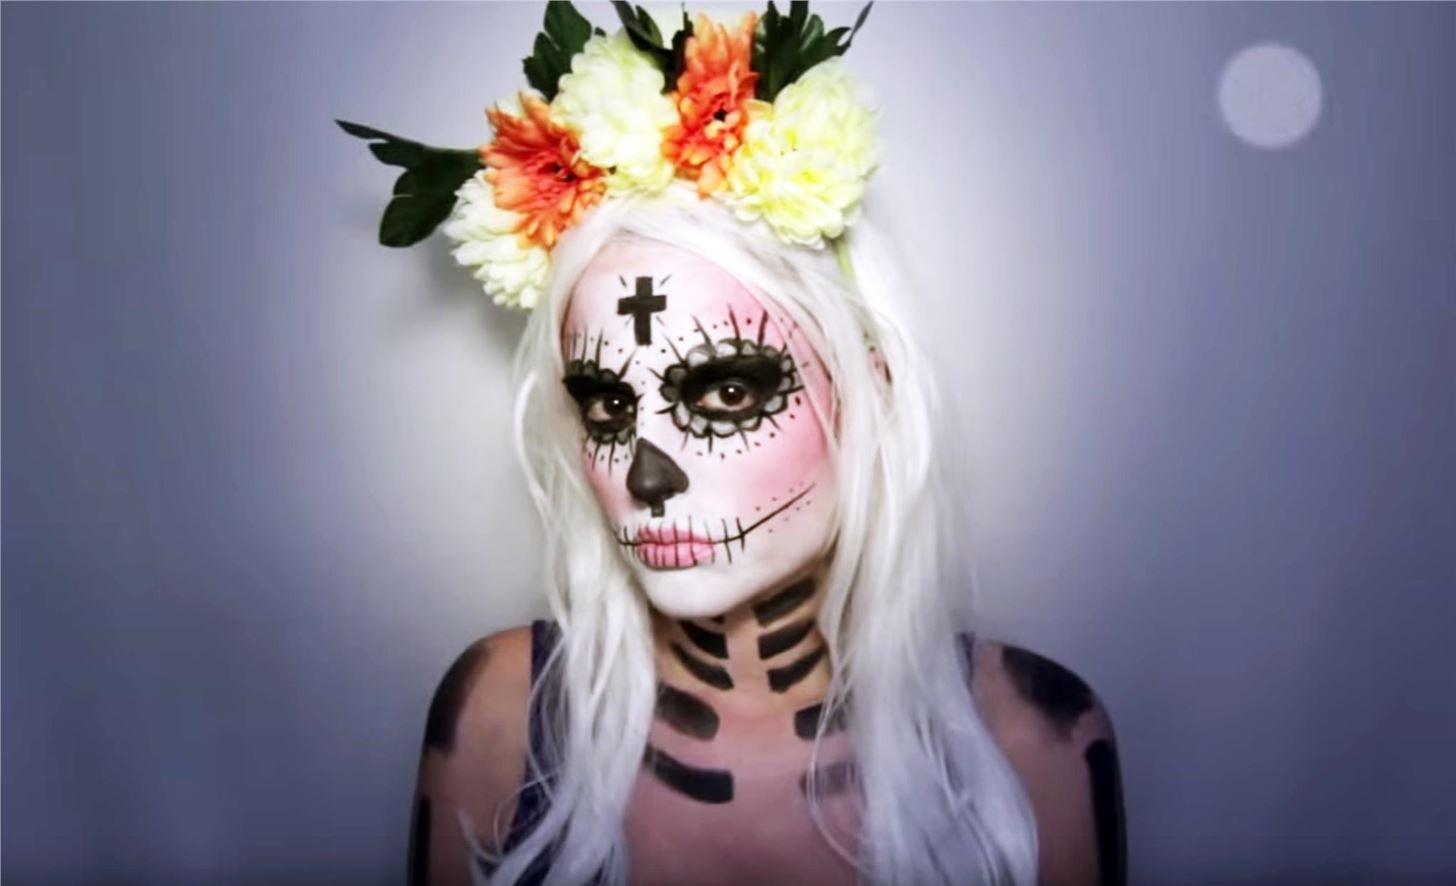 8full body look who says the sugar skull